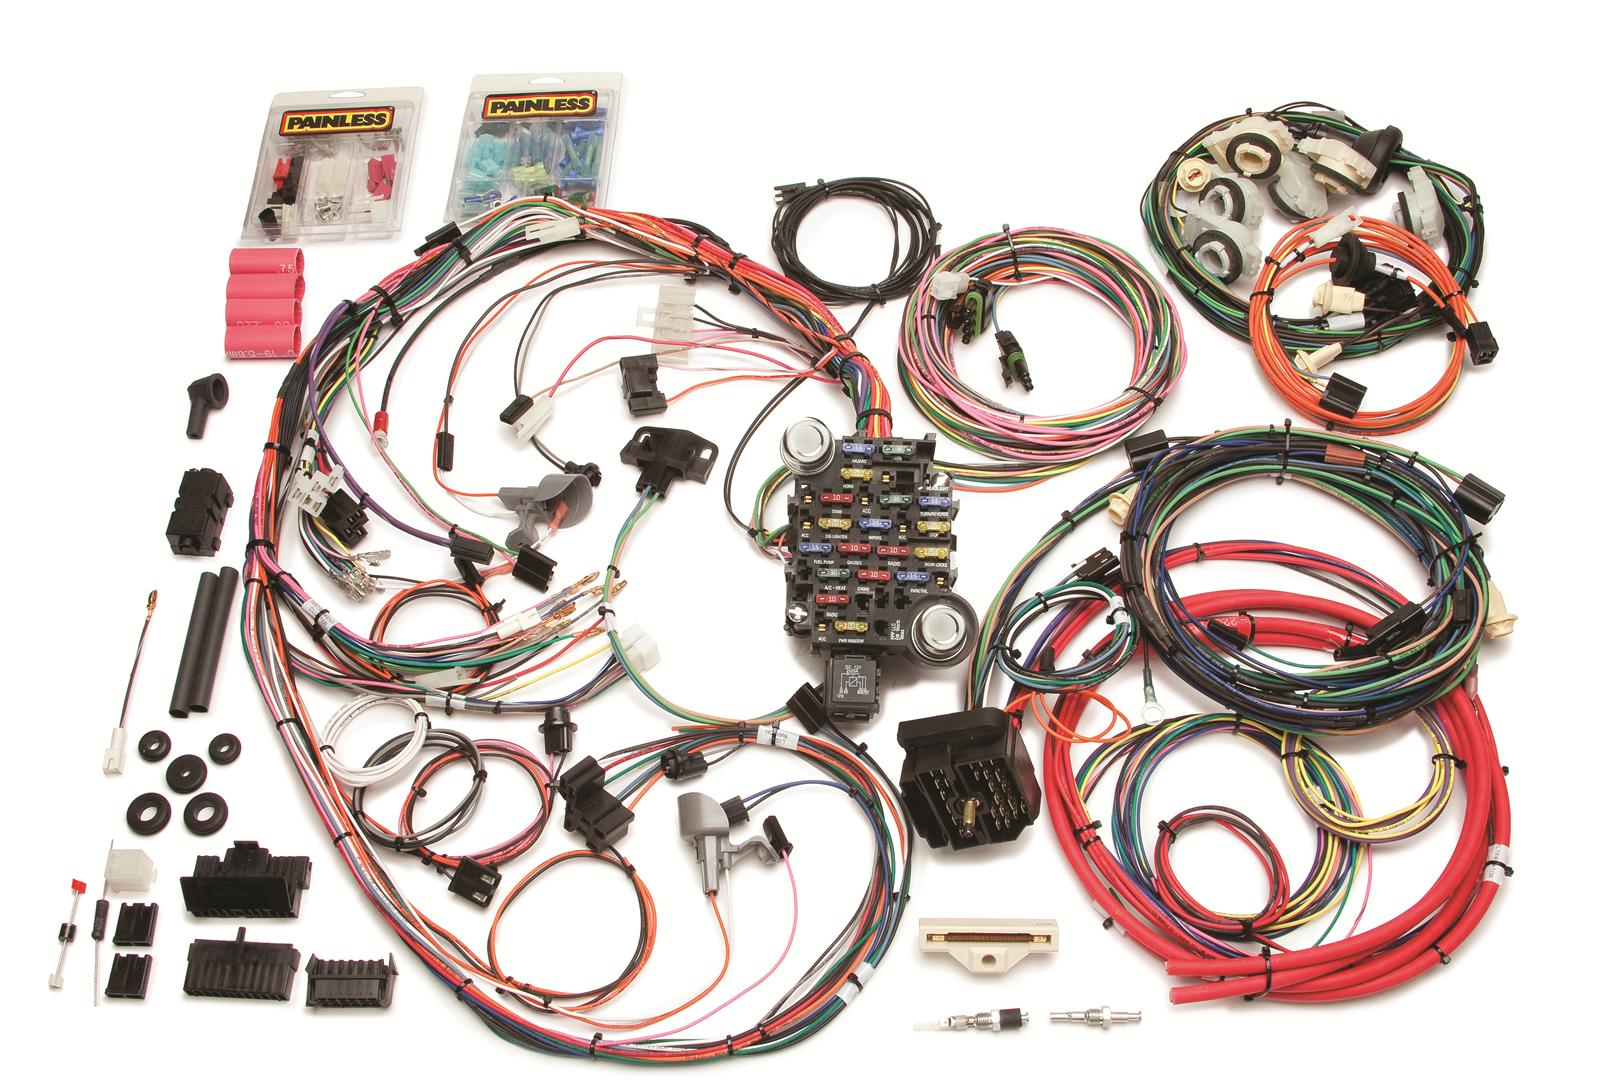 Painless Performance 26-Circuit 1978-81 Direct Fit Camaro Harnesses 20114 -  Free Shipping on Orders Over $99 at Summit Racing